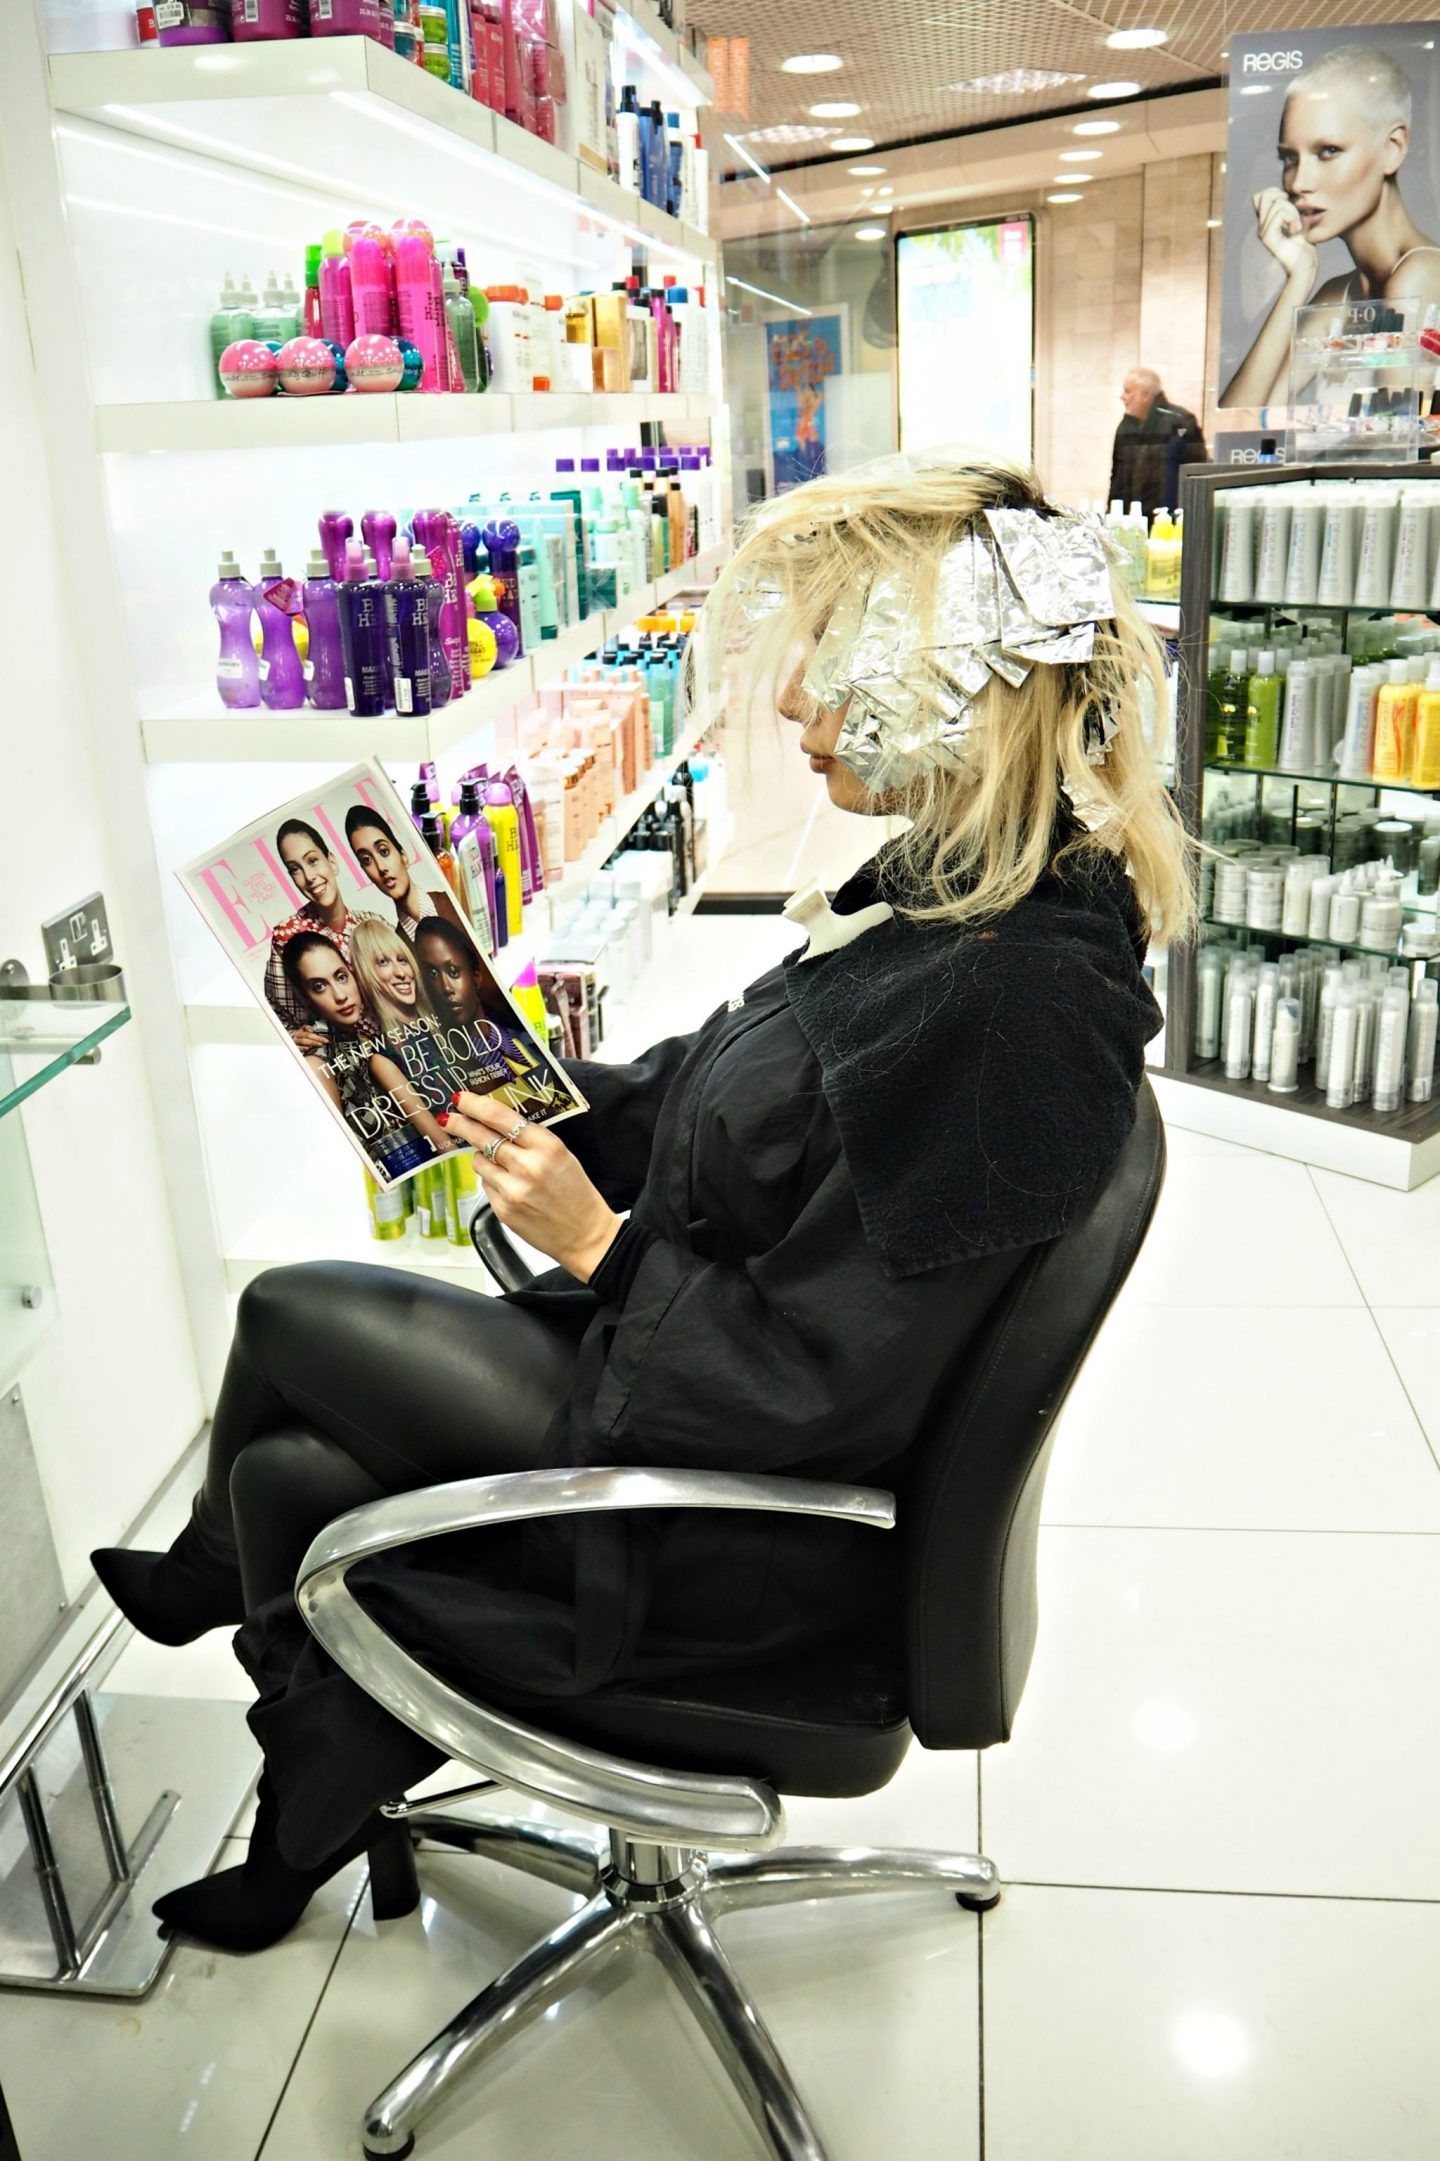 Getting my hair done at Regis hair salon in Epsom